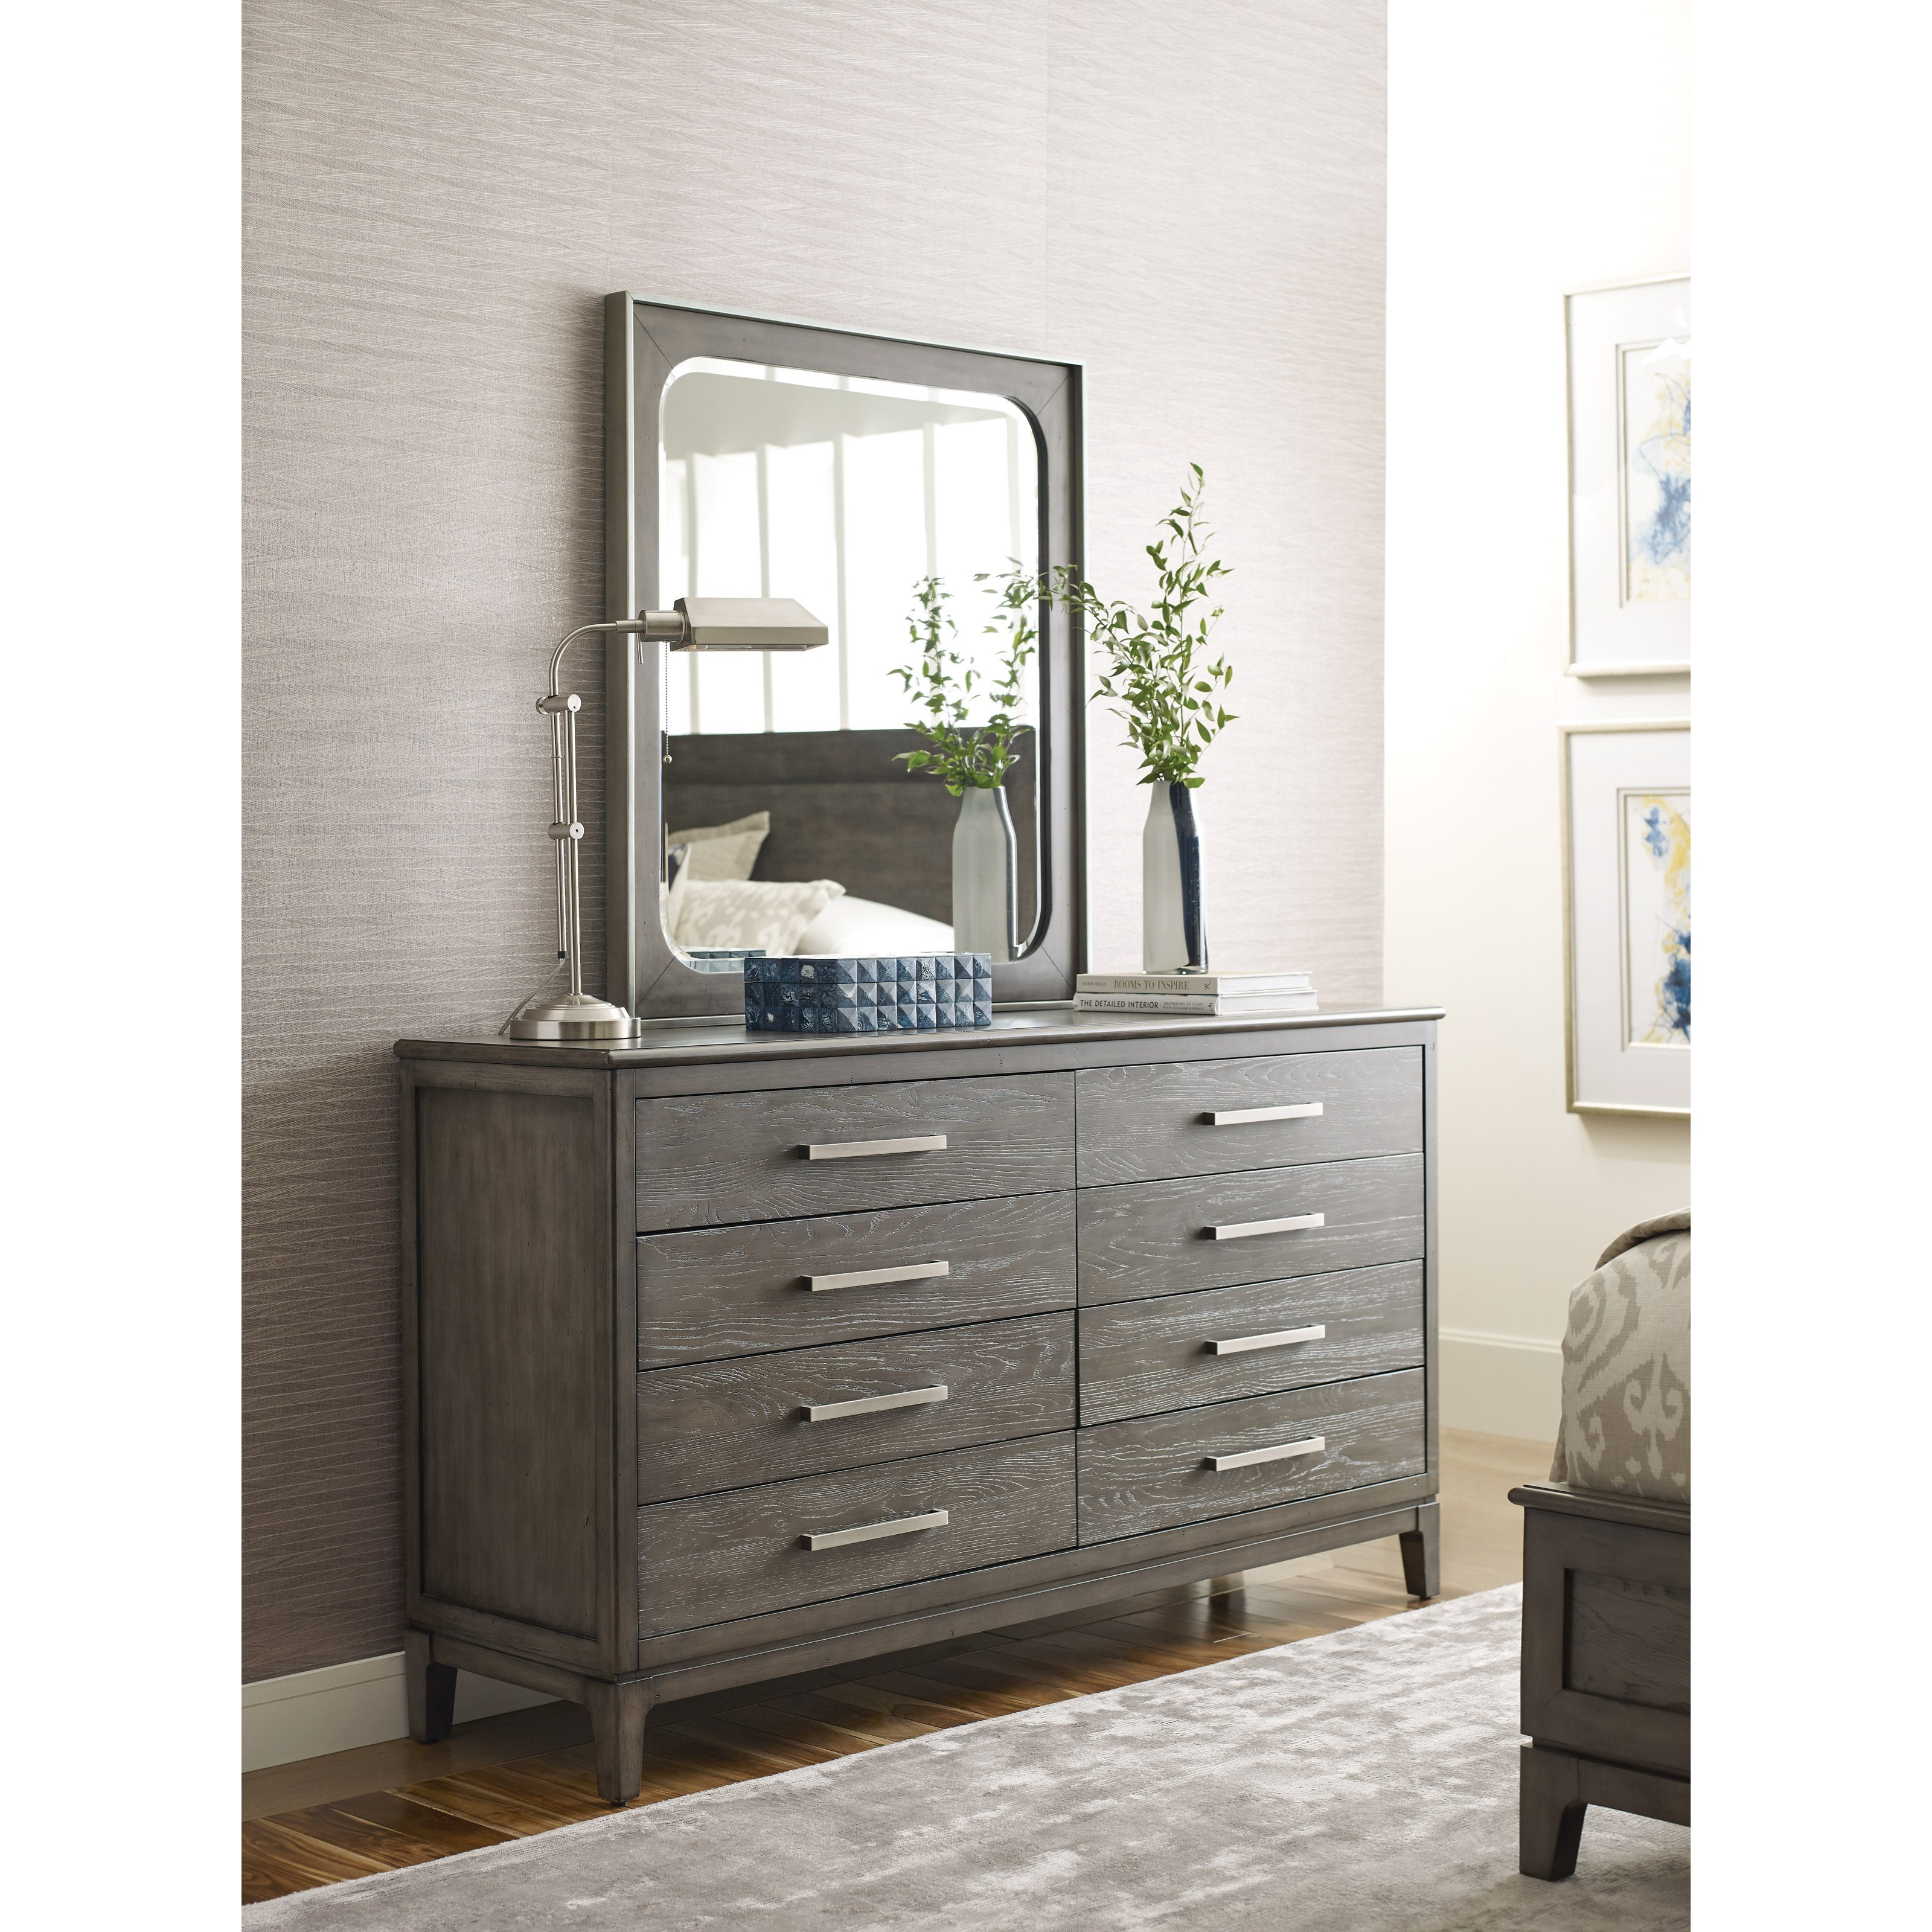 Cascade Sellers Drawer Dresser and Mirror Set by Kincaid Furniture at Johnny Janosik